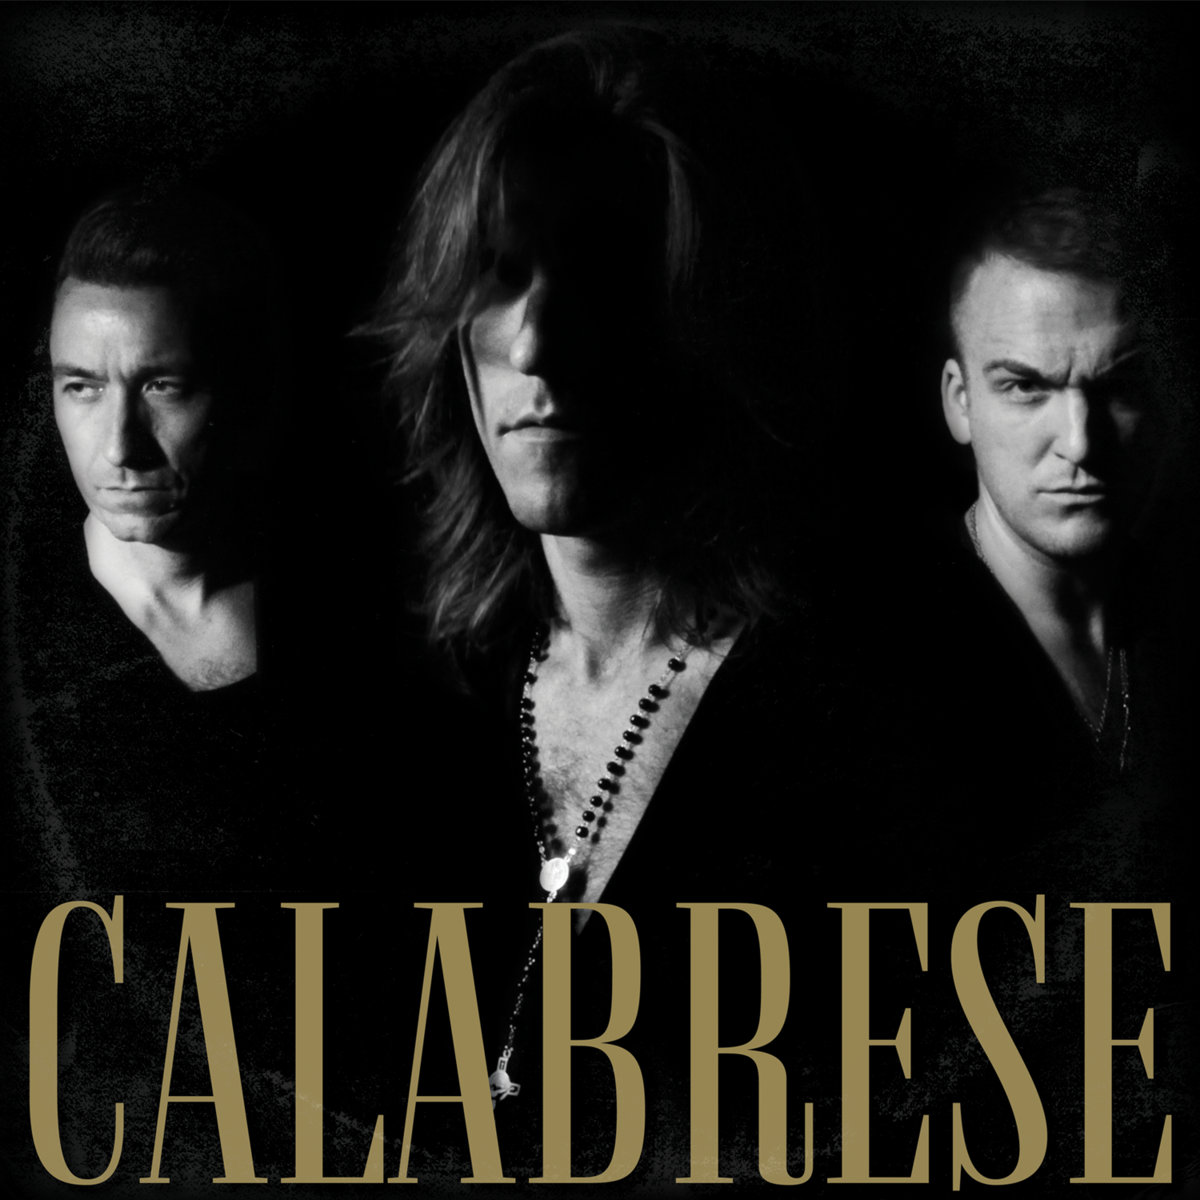 discography - Calabrese 13 Halloweens